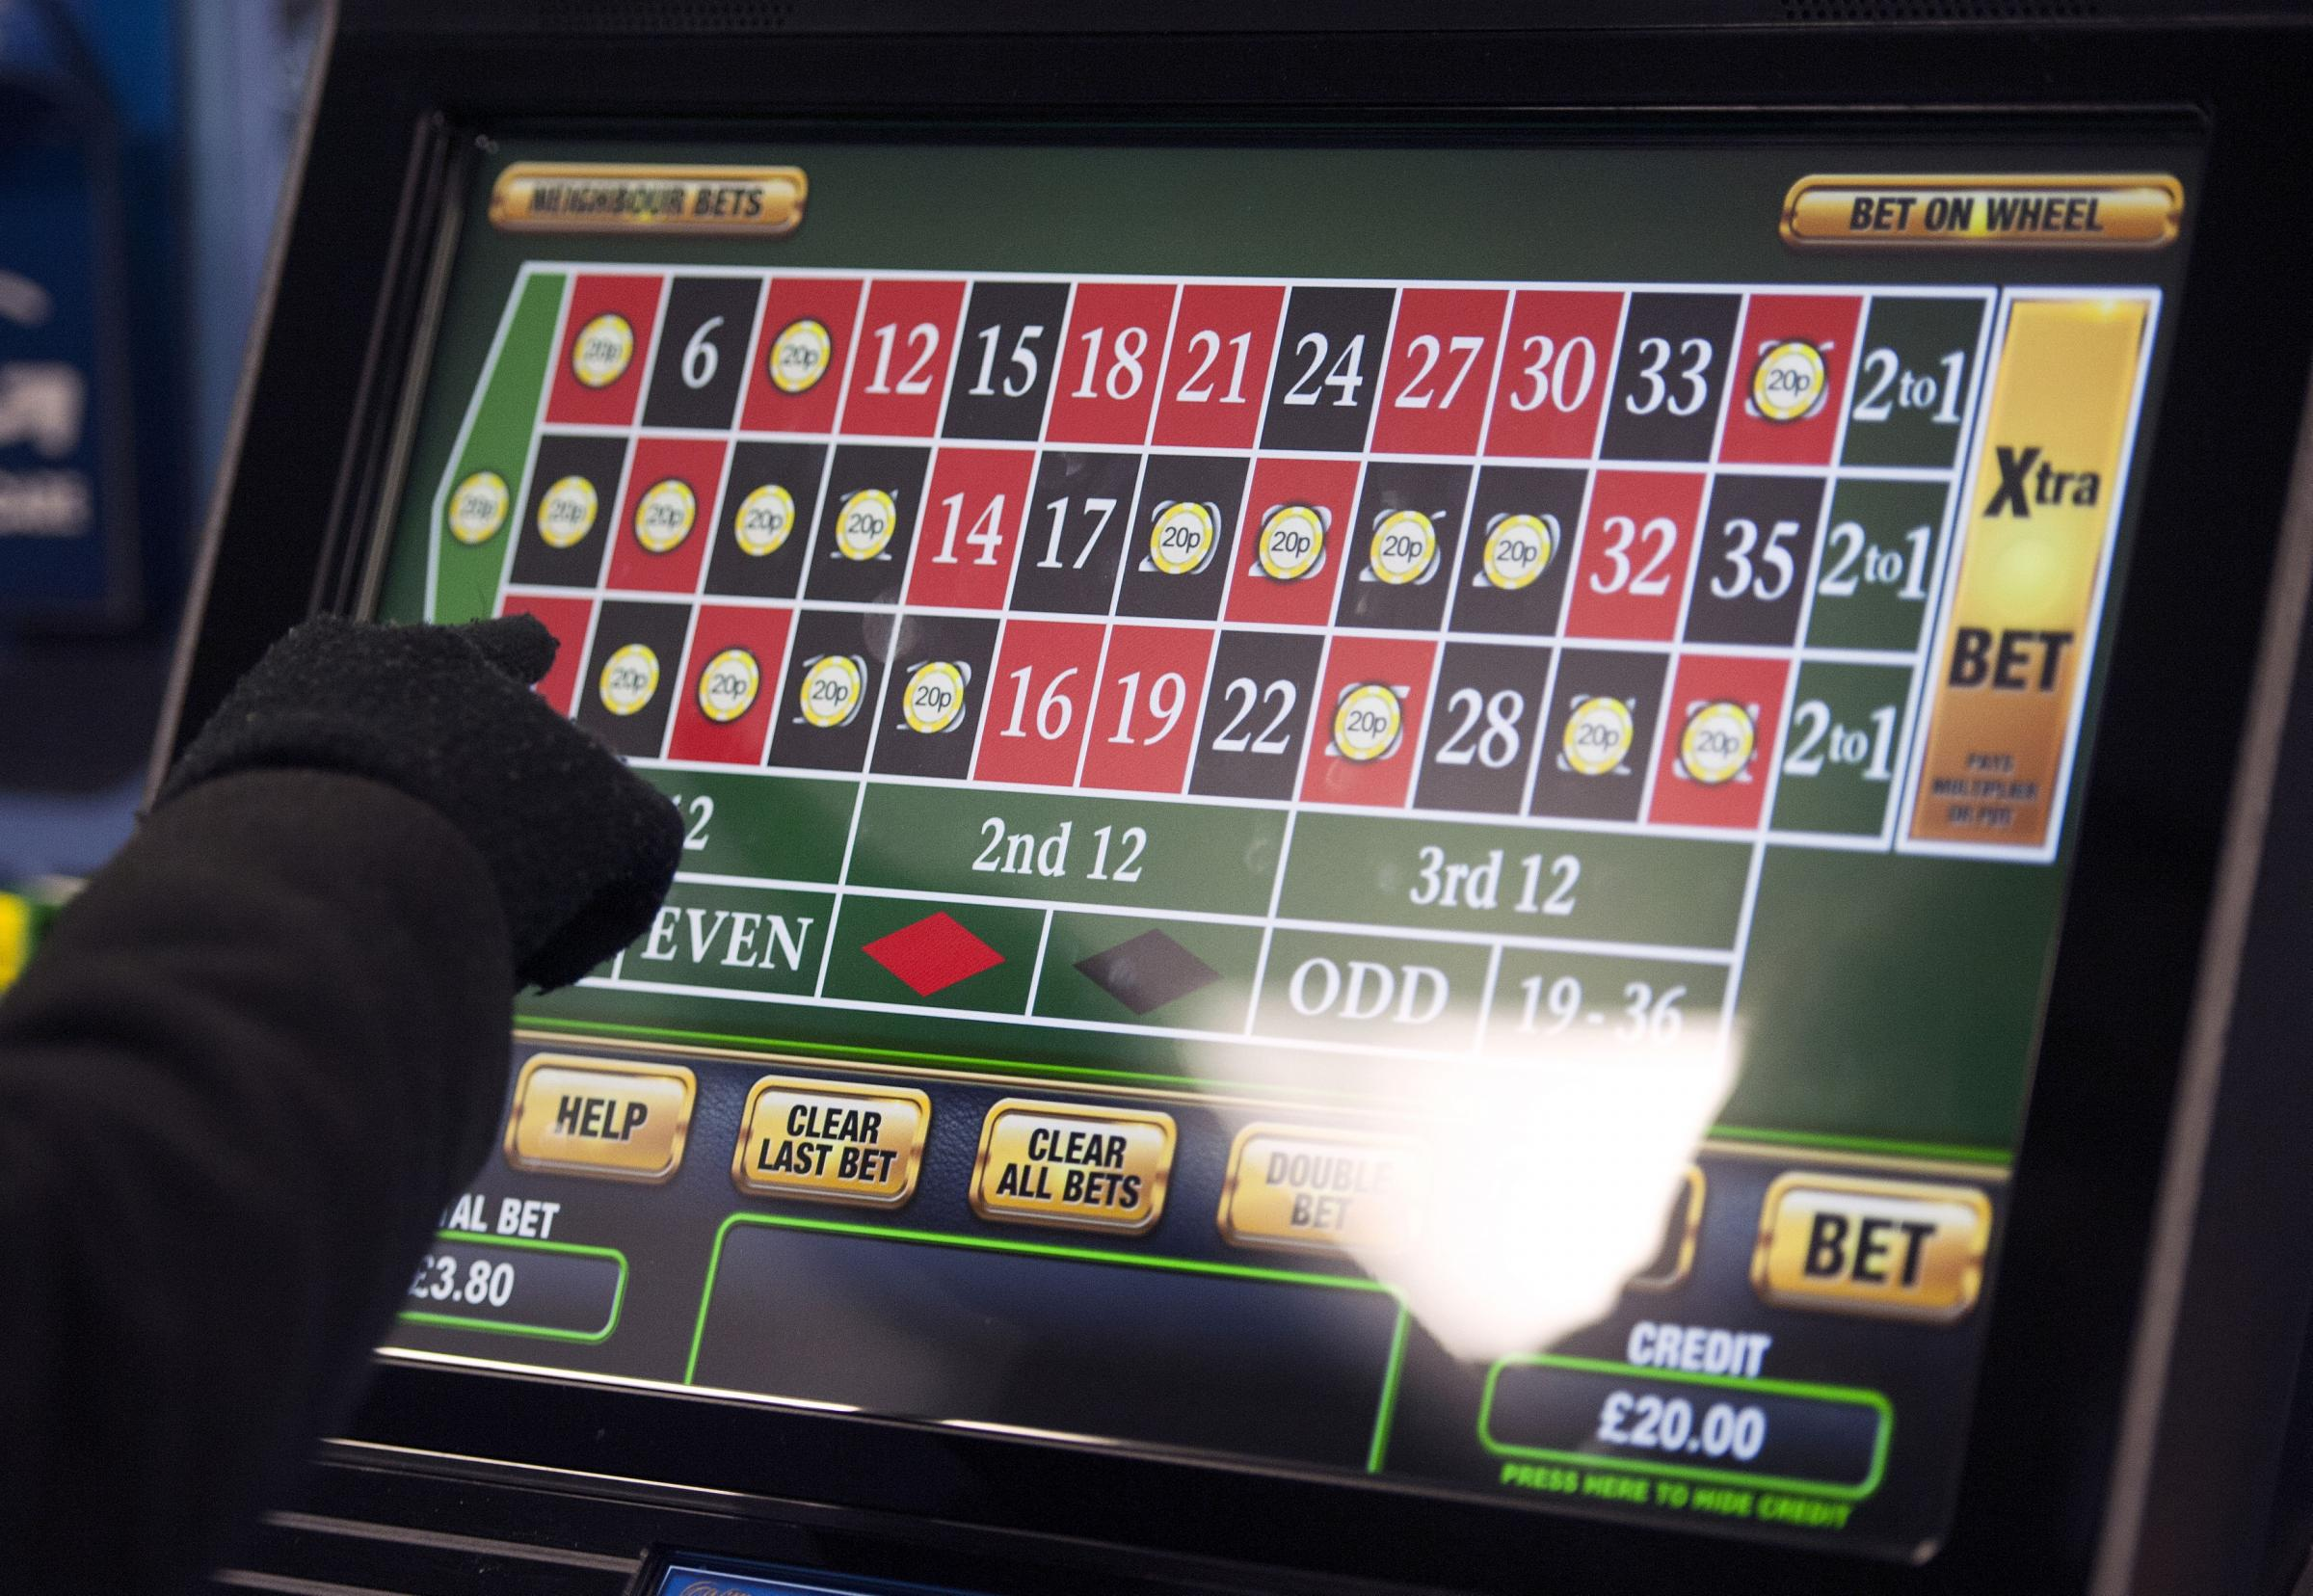 Social blight: Government's decision on betting machines will cost thousands of jobs, warns industry